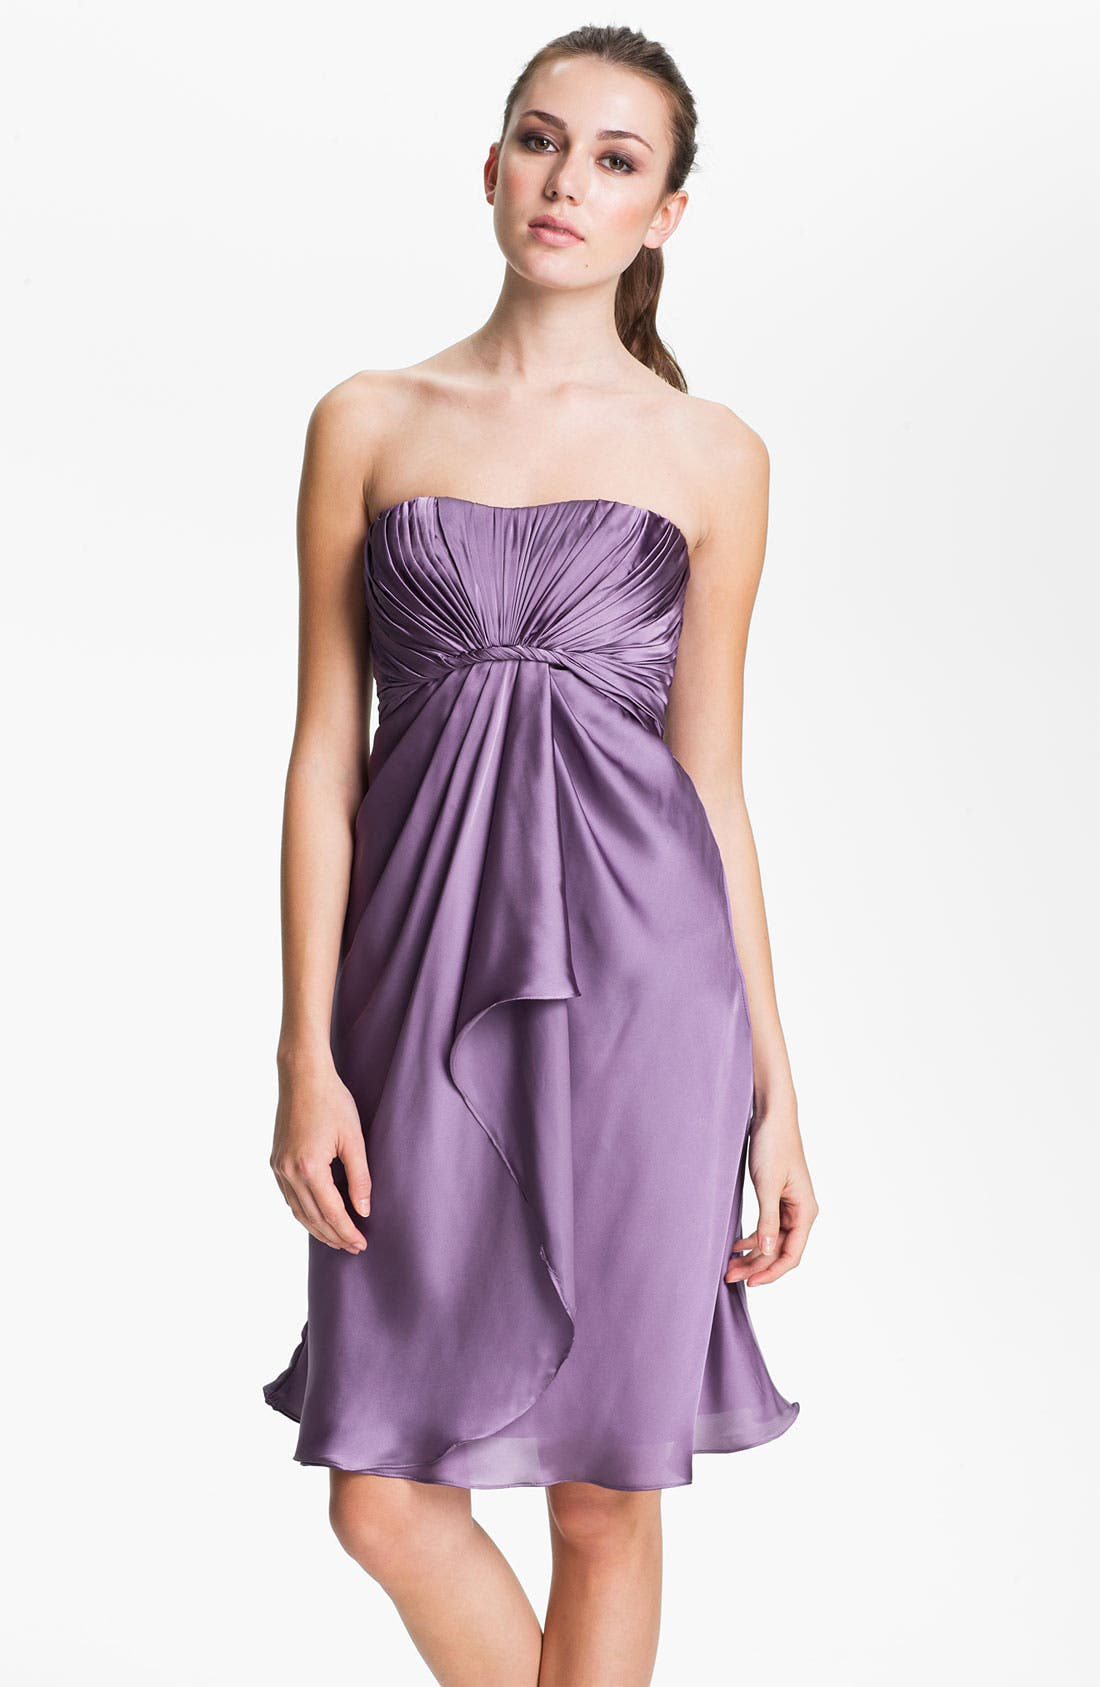 Main Image - ML Monique Lhuillier Bridesmaids Strapless Drape Detail Charmeuse Dress (Nordstrom Exclusive)